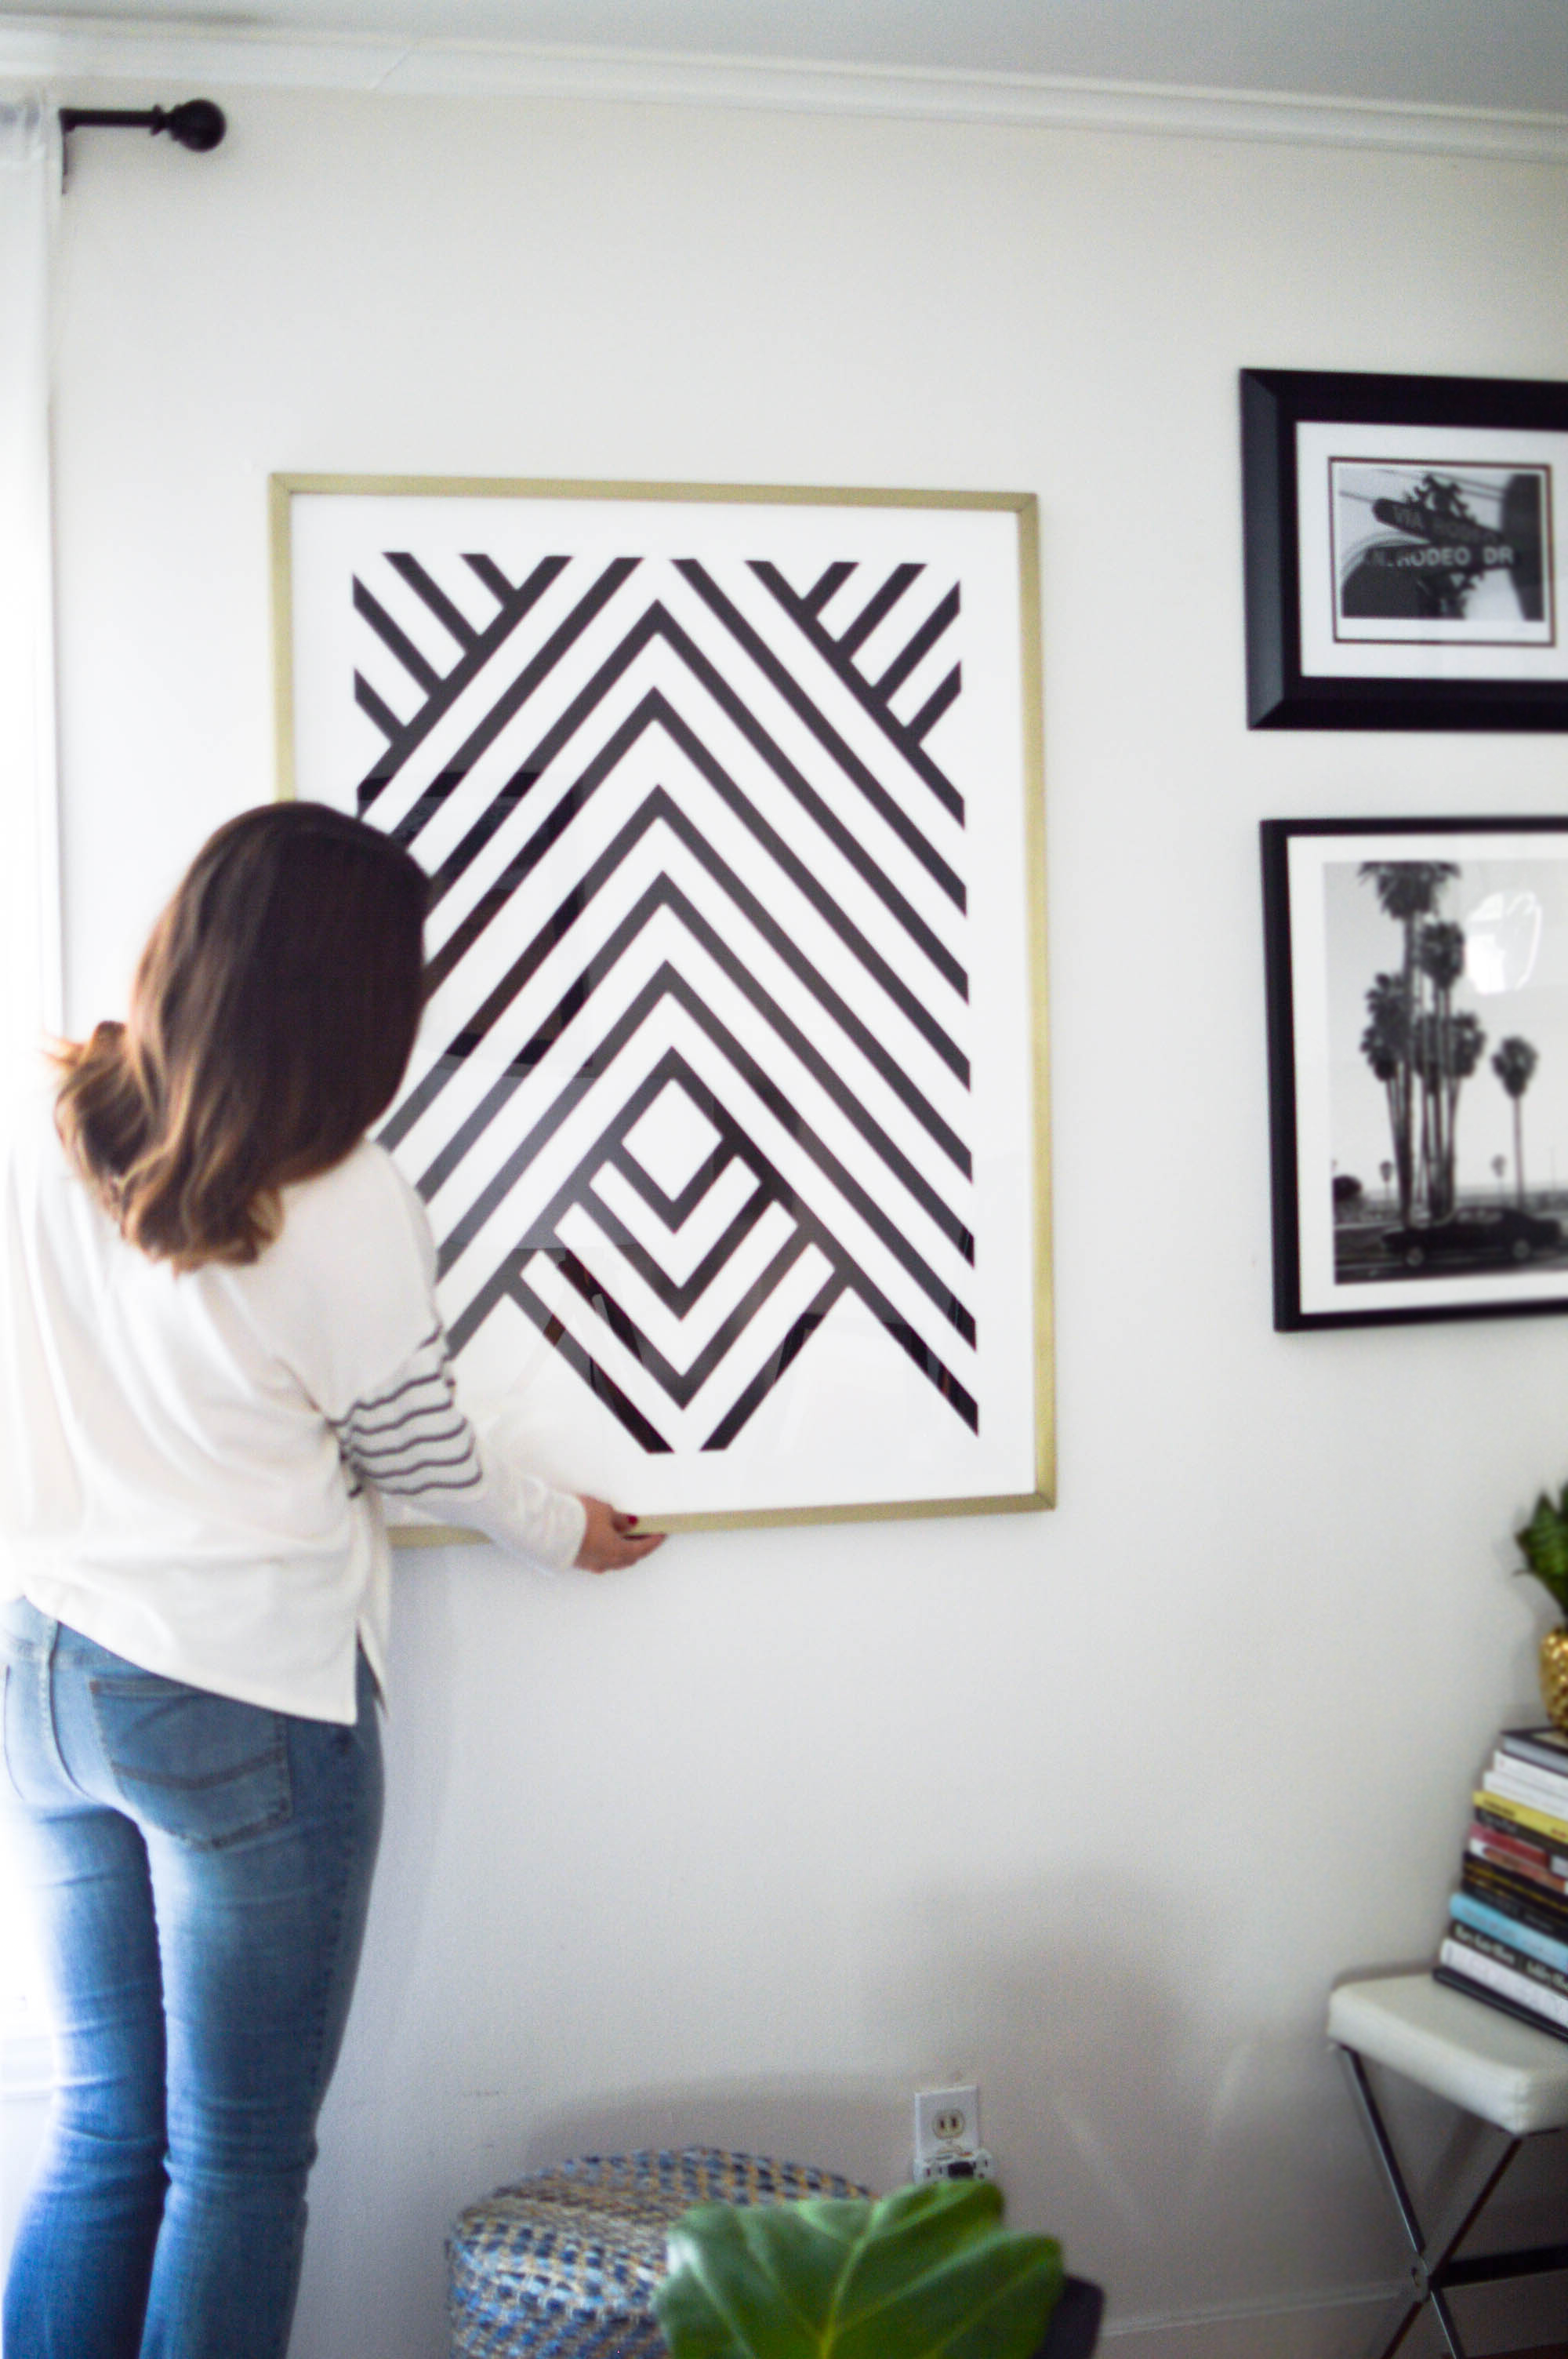 Rental Life, Decorating with Minted Art via. www.birdieshoots.com